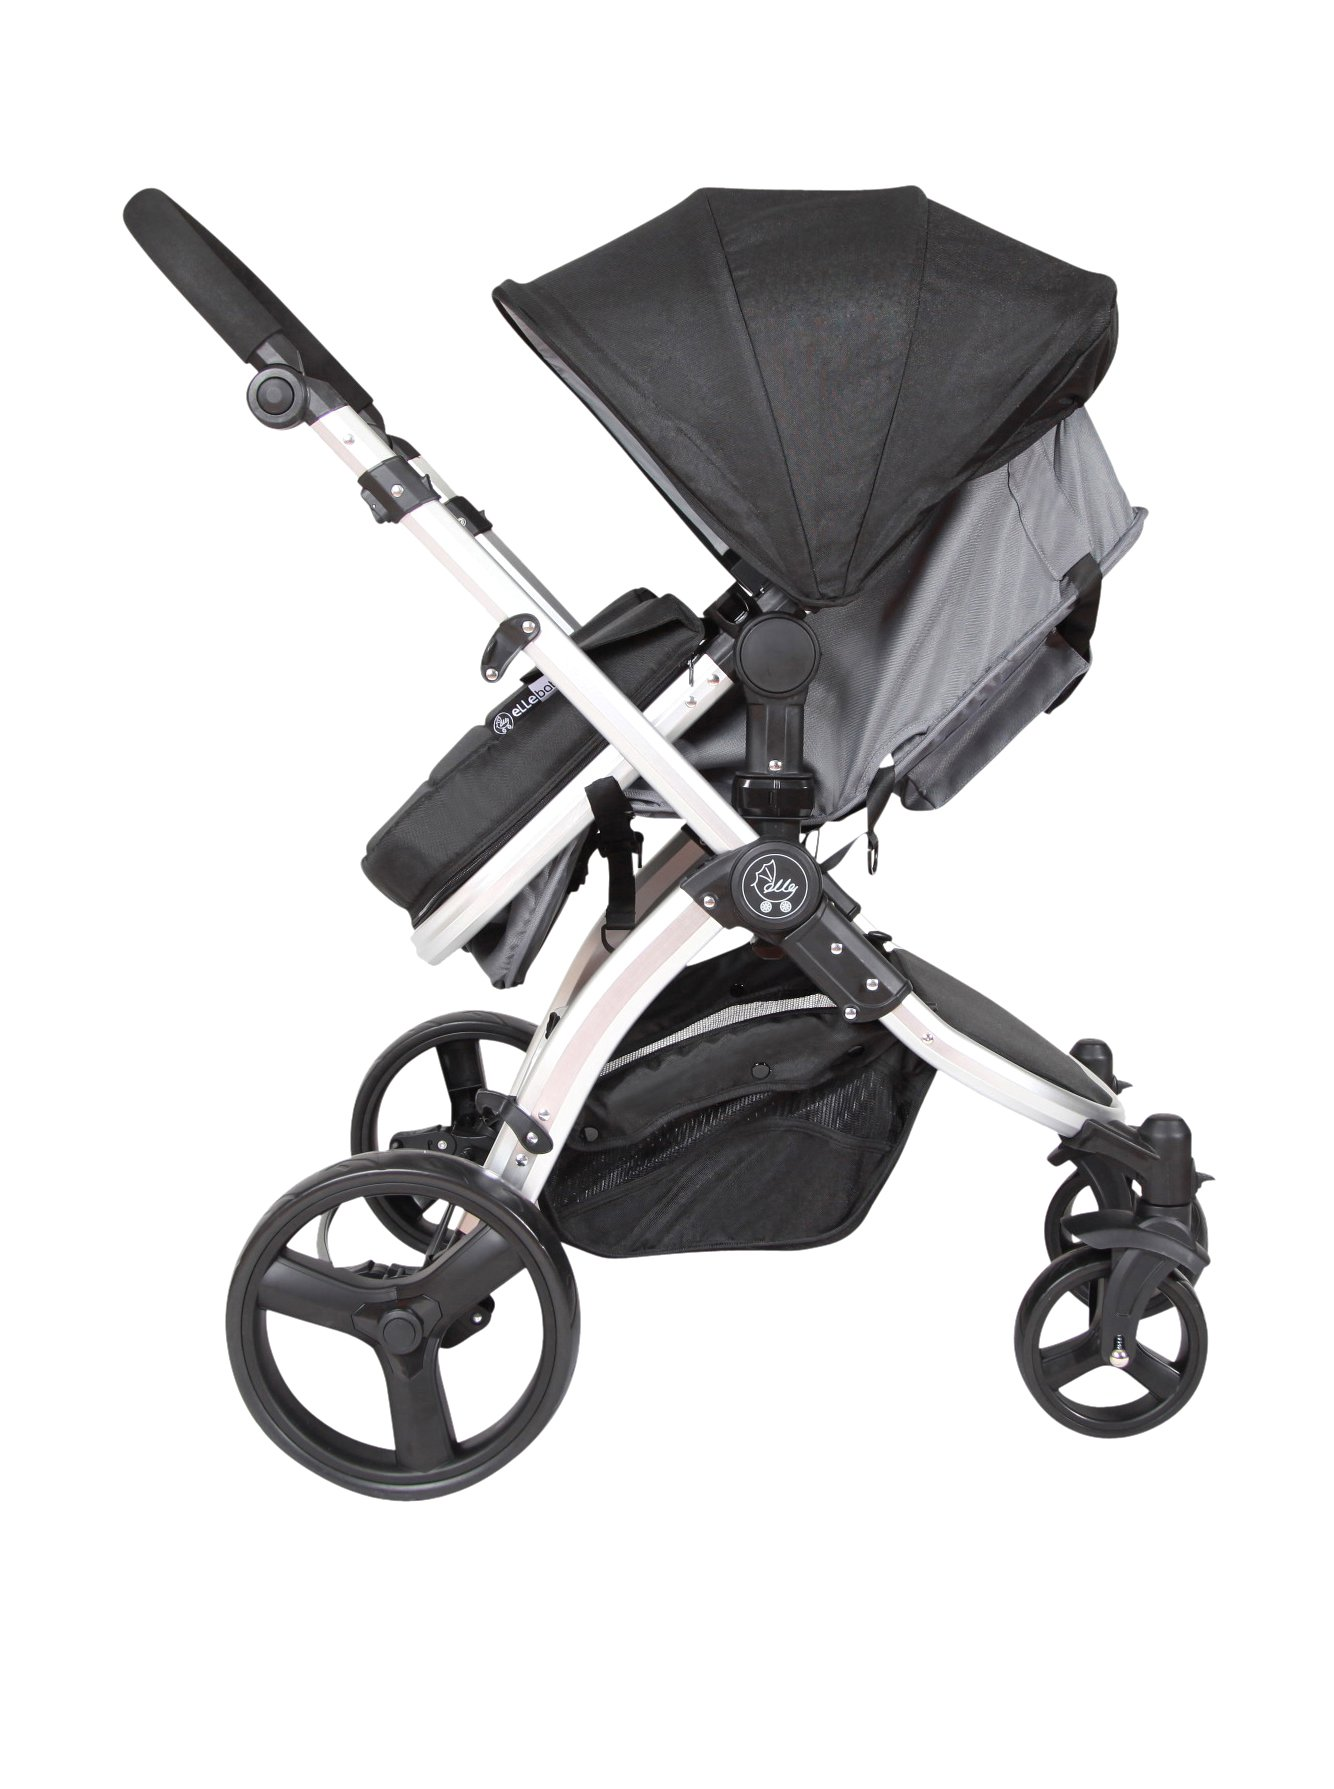 Elle Baby Journey Convertible Stroller - Black by Elle Baby